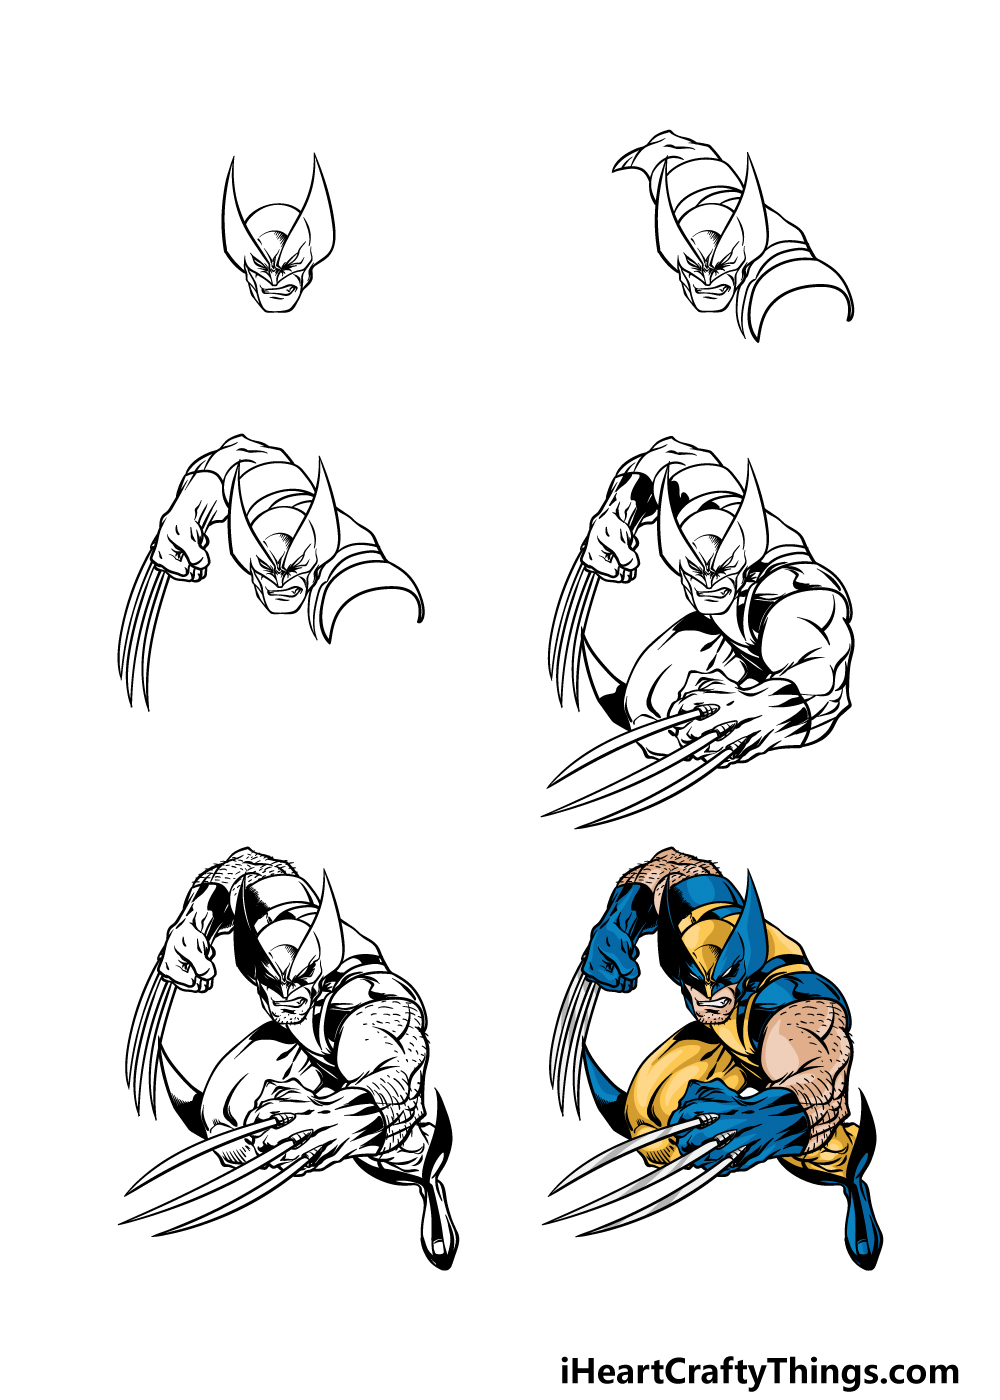 how to draw wolverine in 6 steps